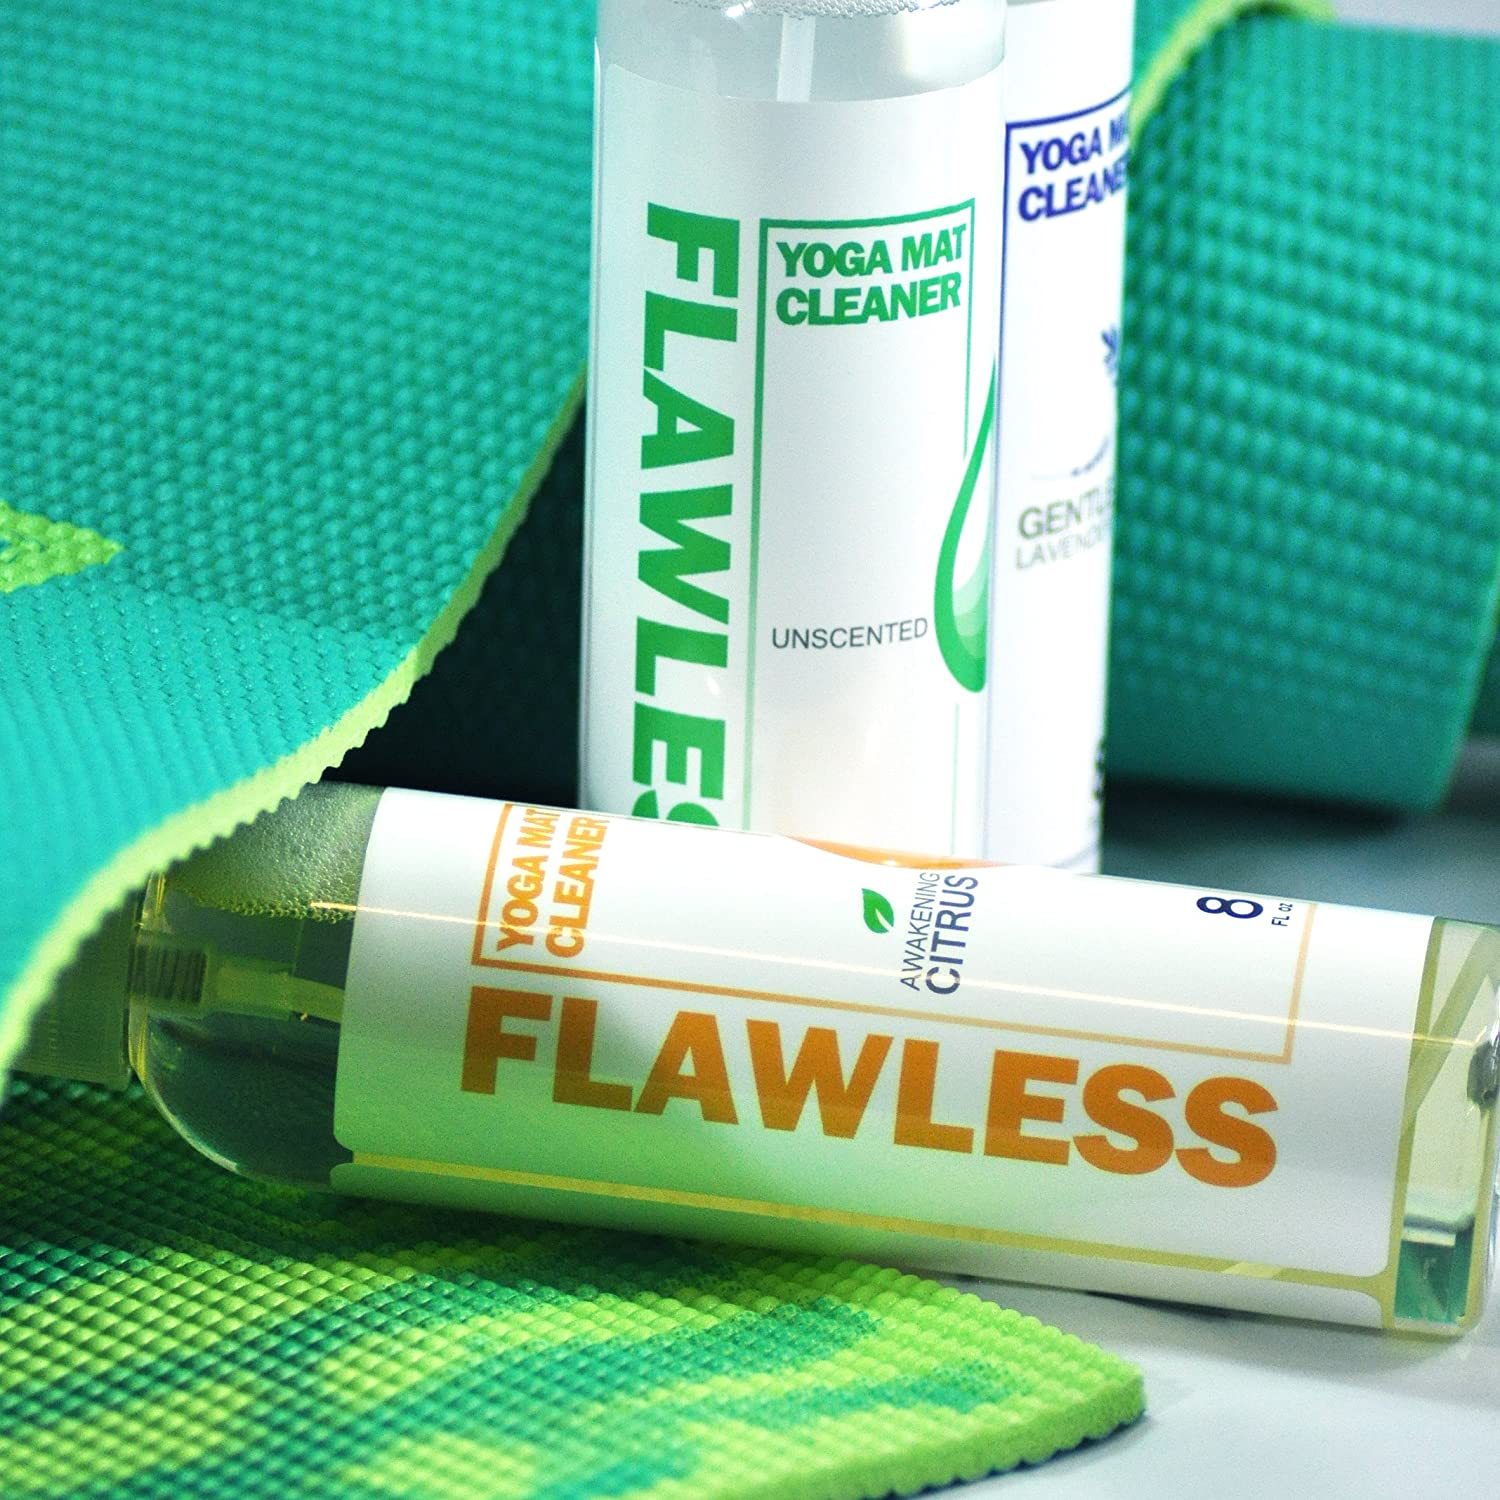 Amazon.com: Clean Flawless Yoga Mat Cleaner | All Natural ...